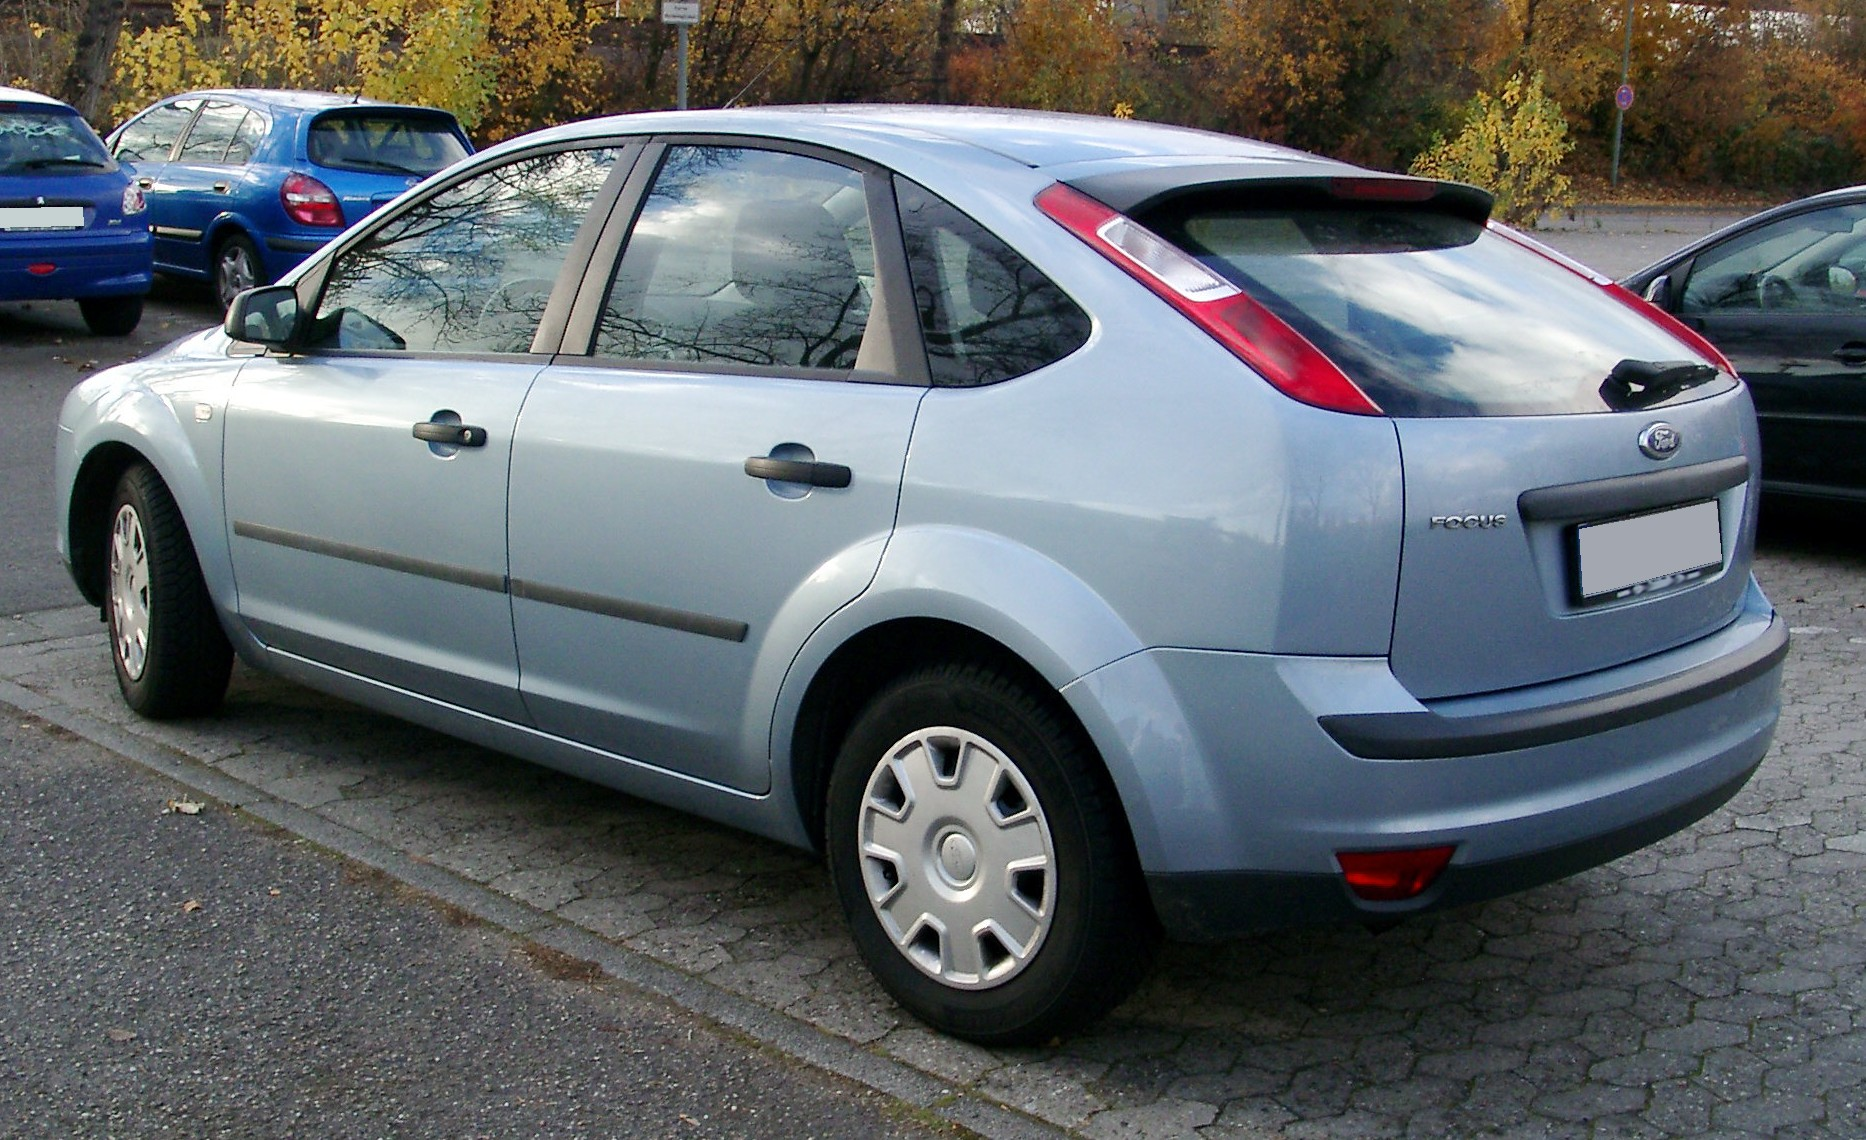 file ford focus 2 rear wikimedia commons